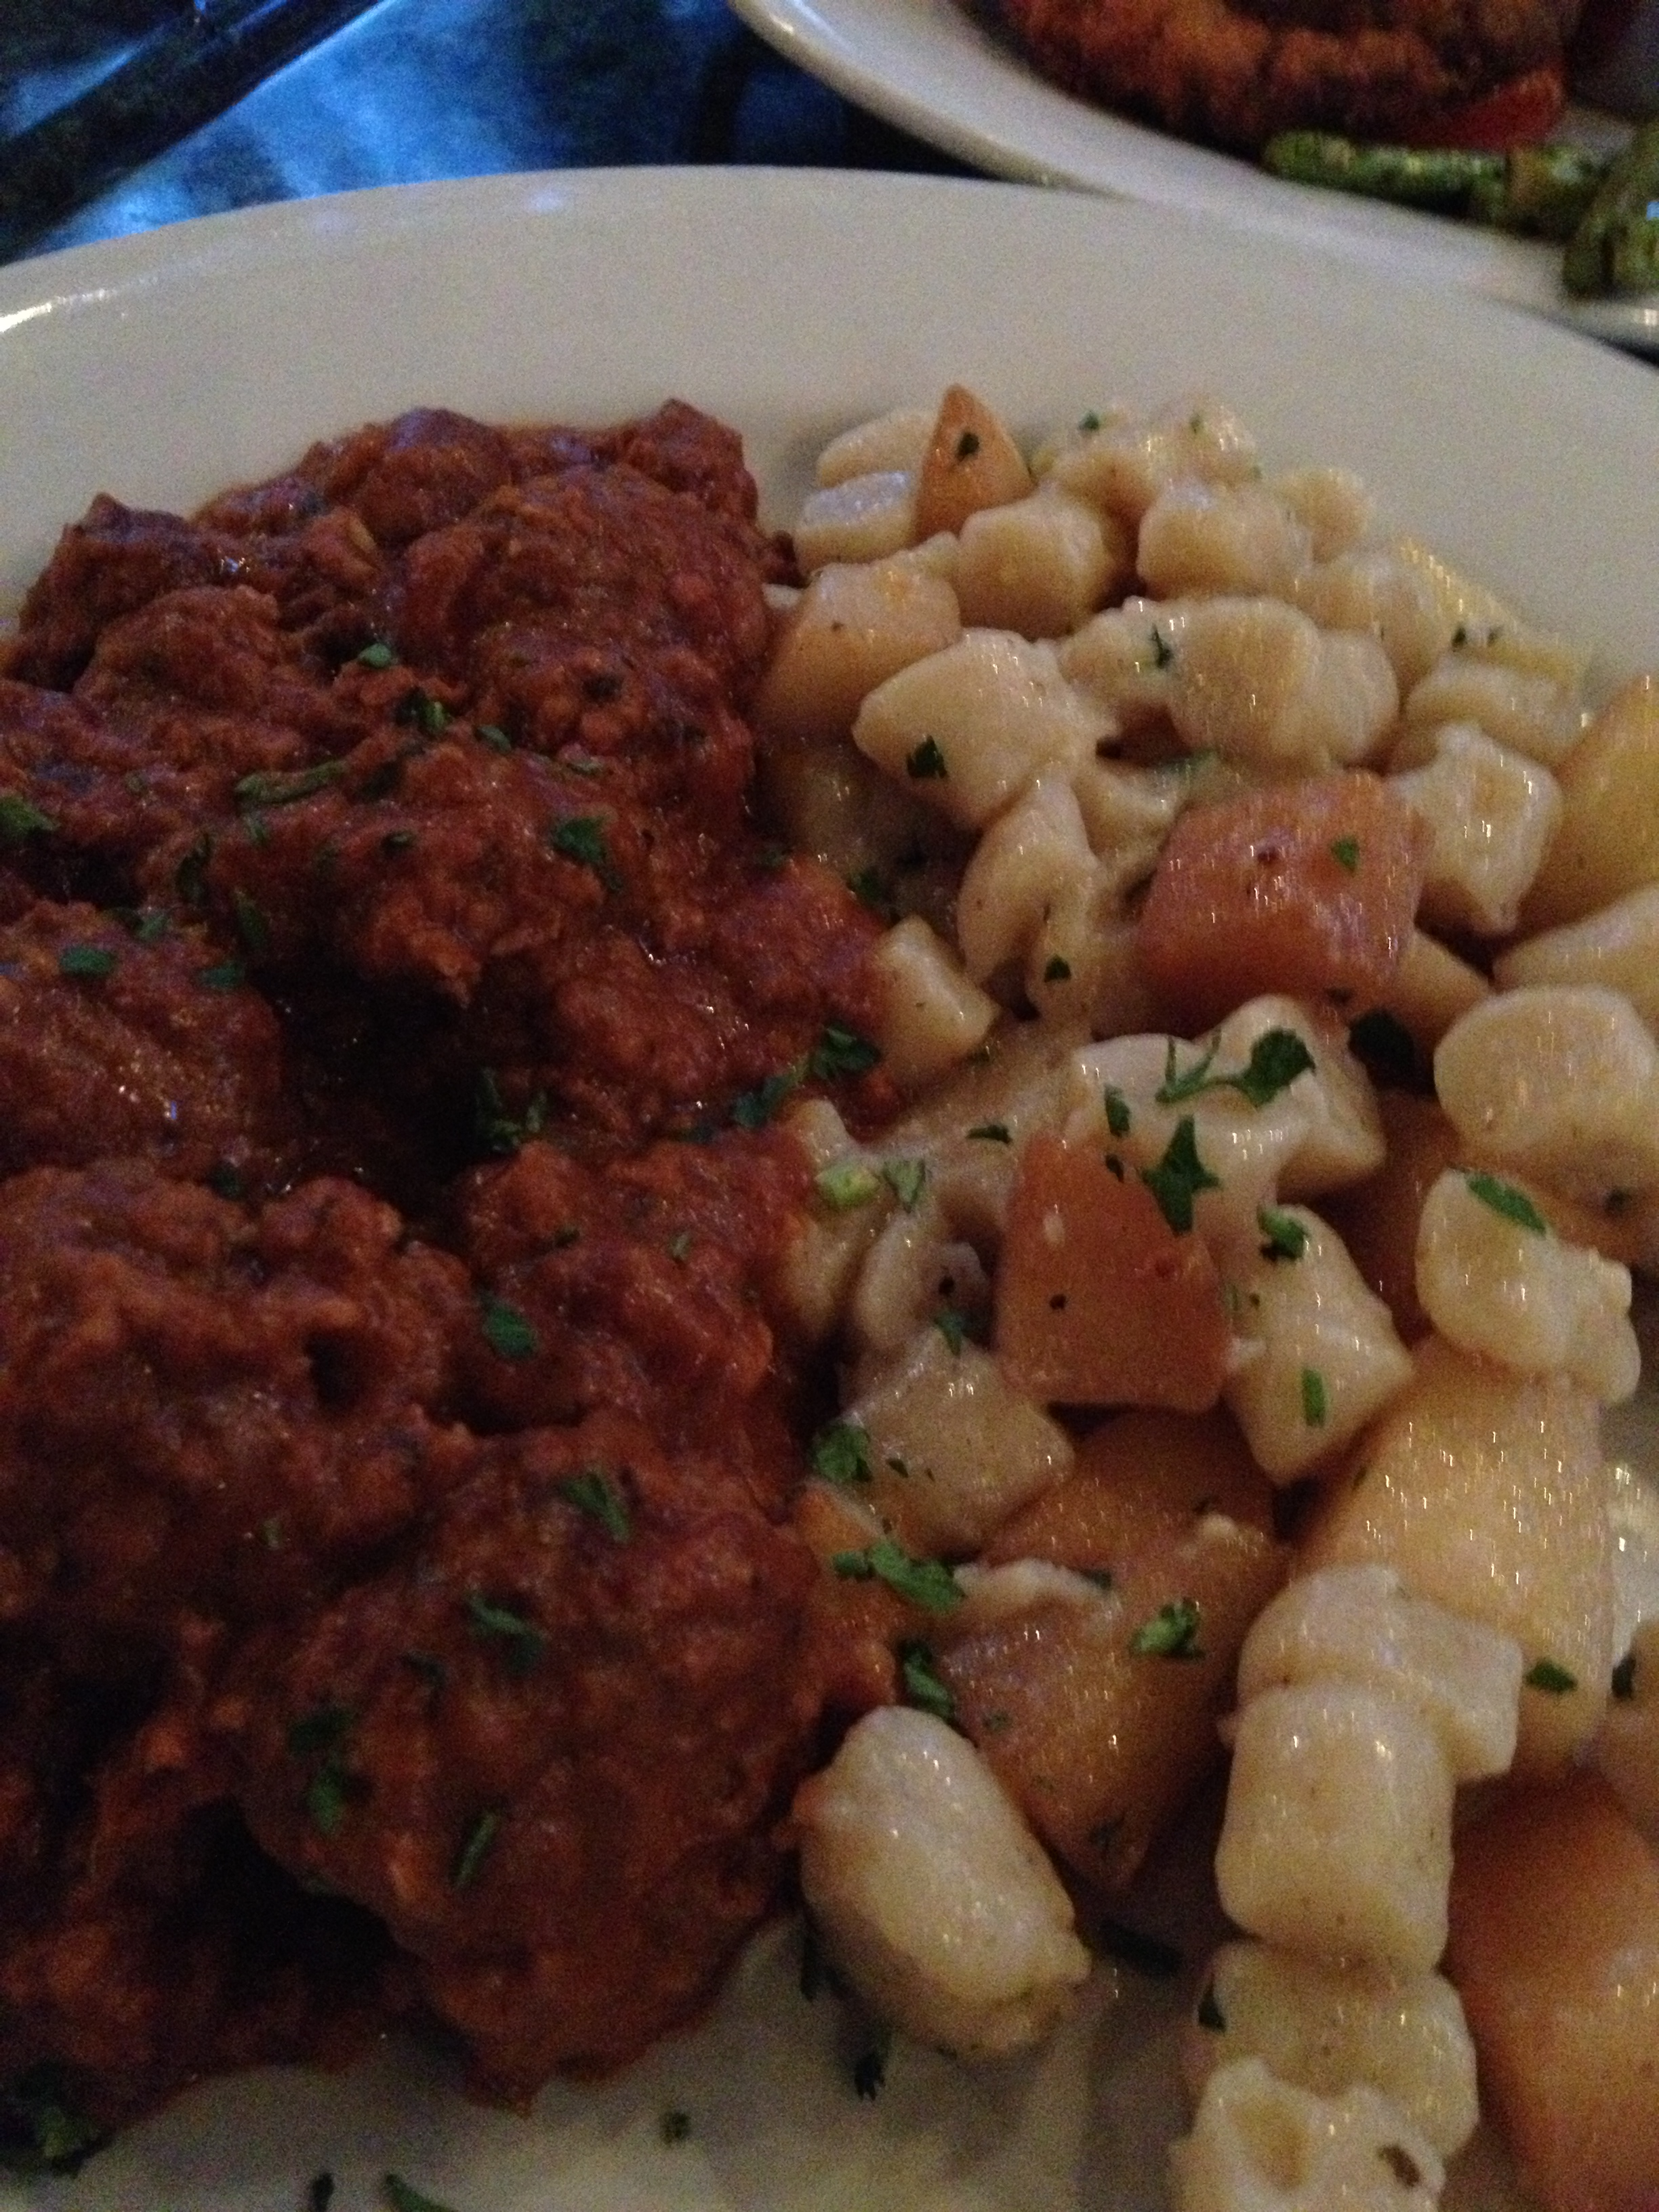 Wild boar meatballs with gnocchi